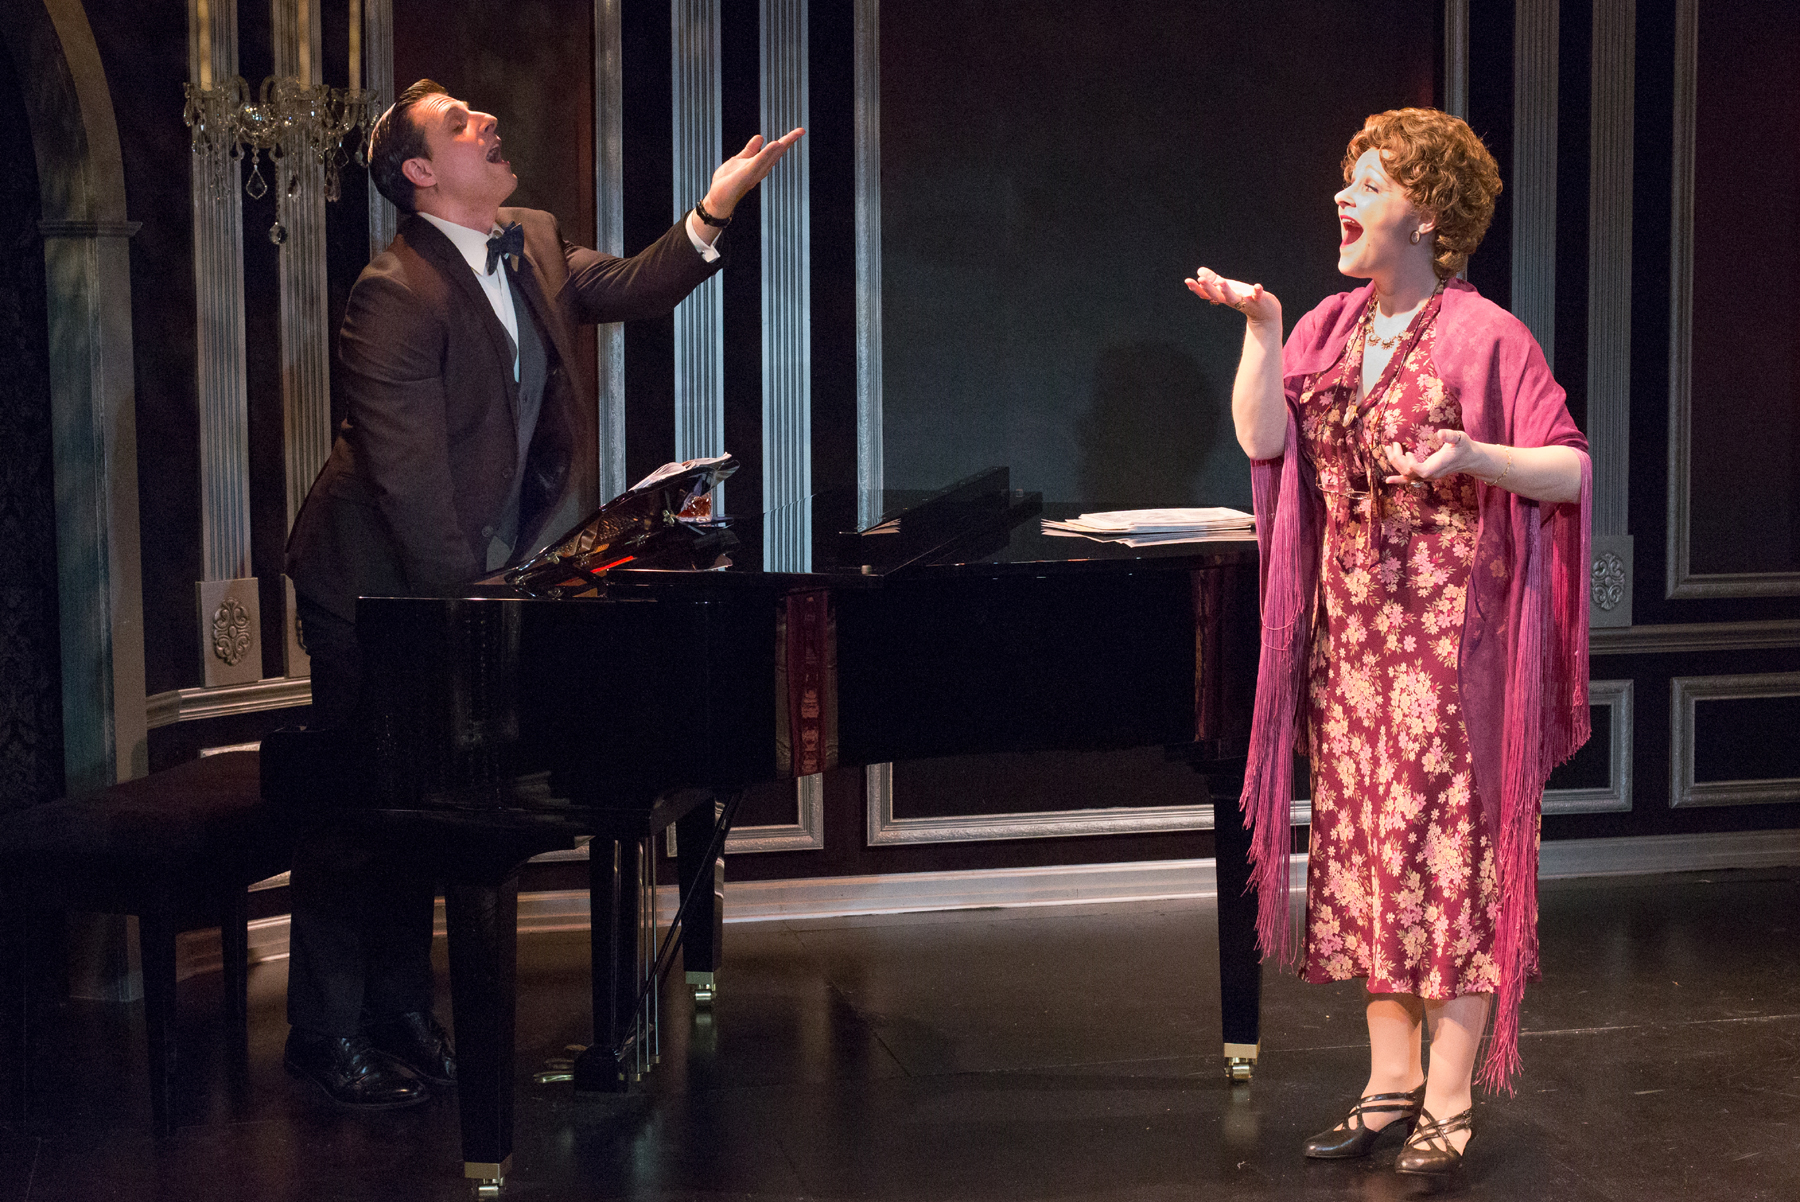 BWW Review: SOUVENIR, A FANTASIA ON THE LIFE OF FLORENCE FOSTER JENKINS at Walnut Street Theatre